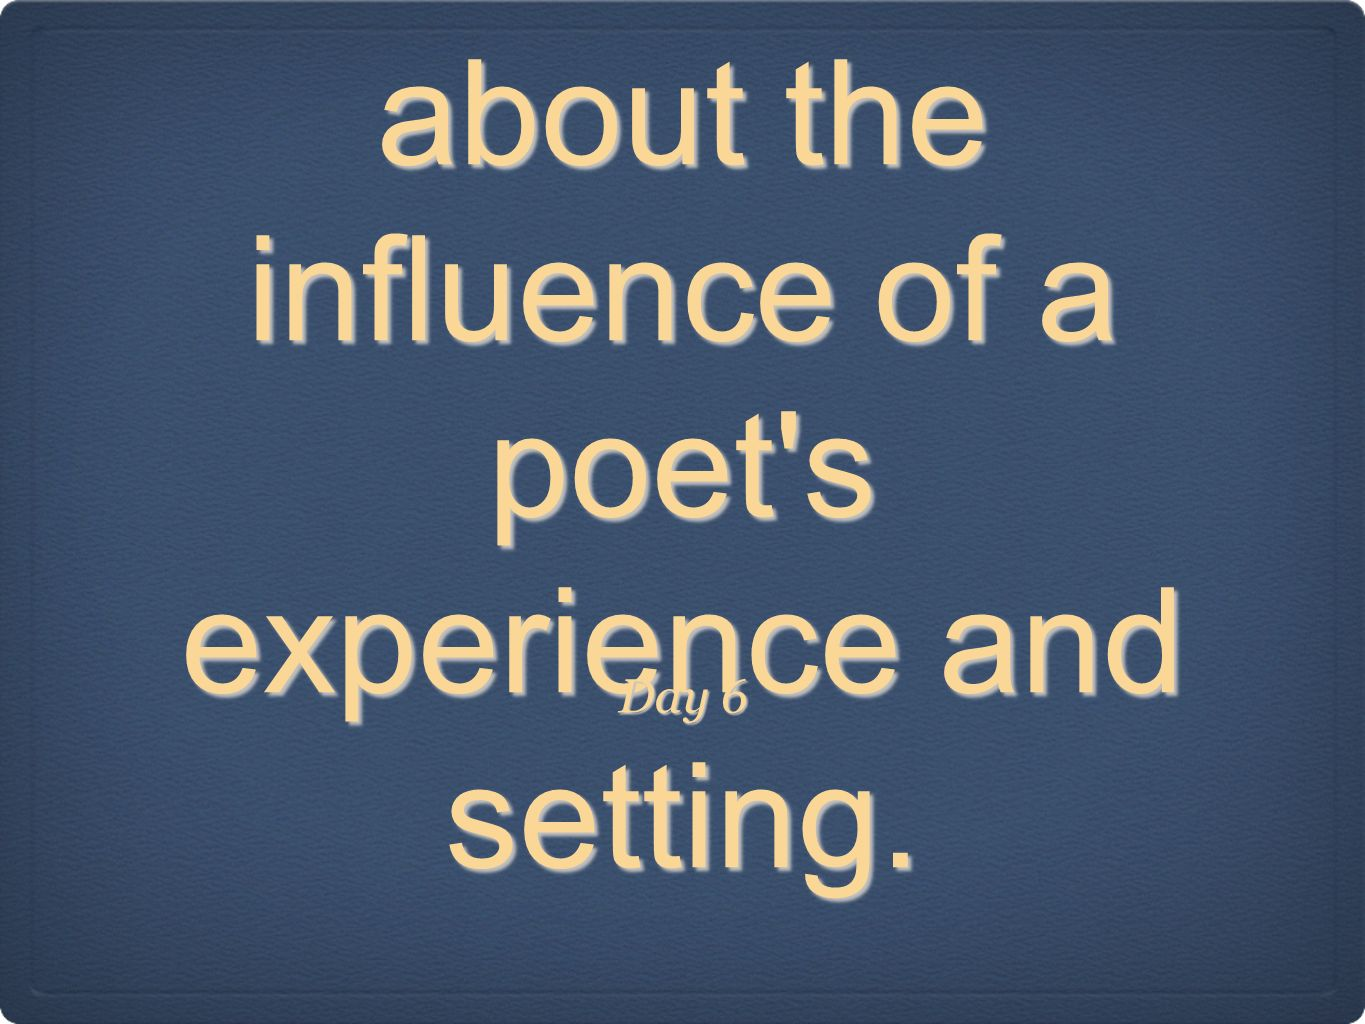 KBAD think about the influence of a poet s experience and setting.